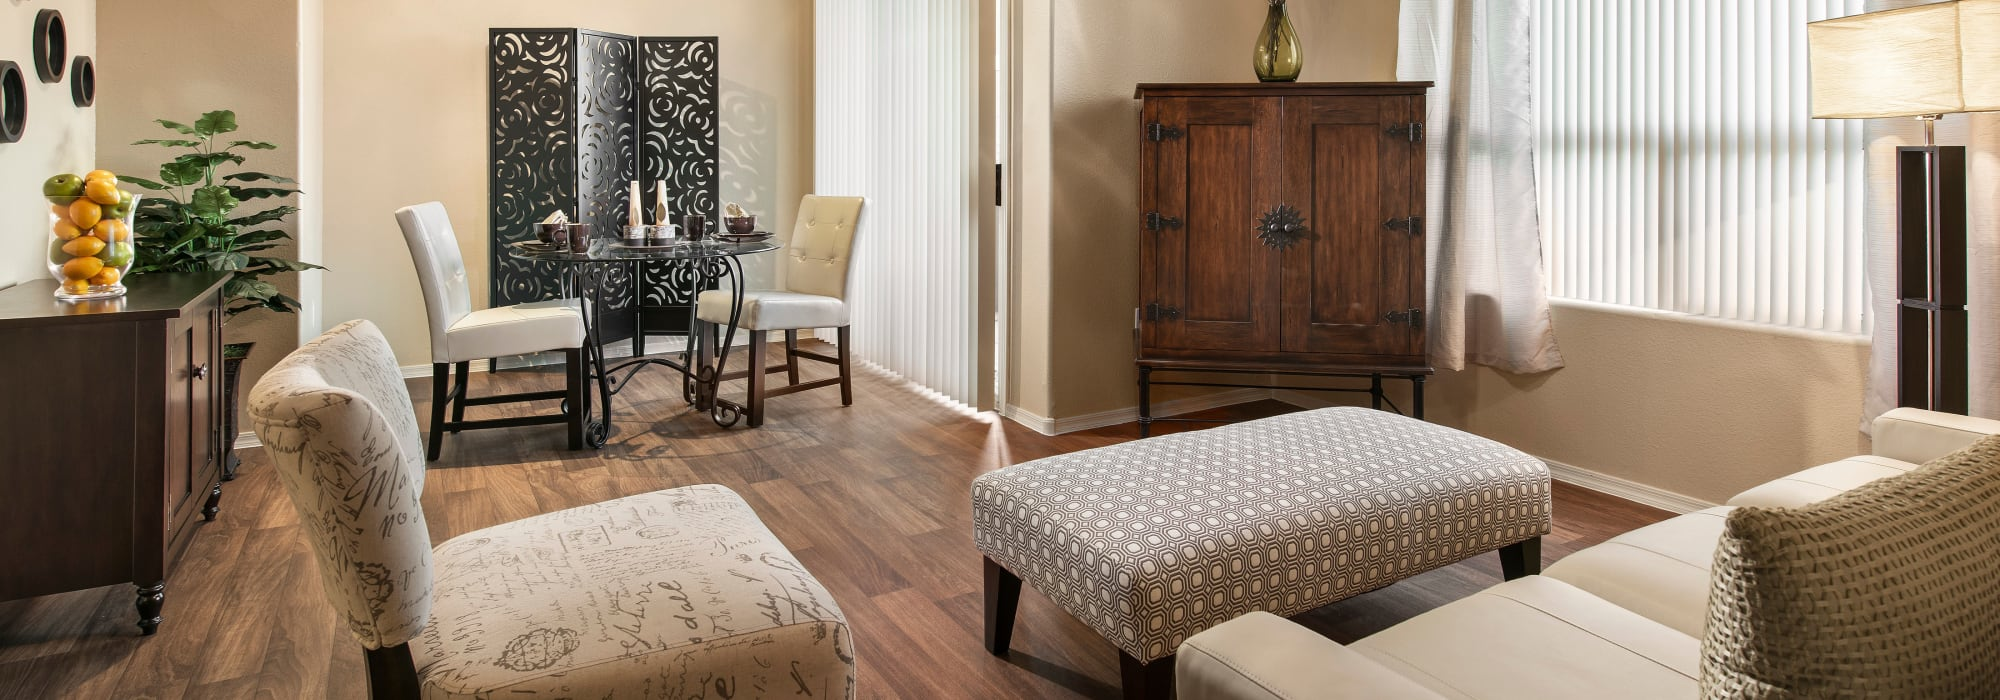 Luxury living room at Laguna at Arrowhead Ranch in Glendale, Arizona